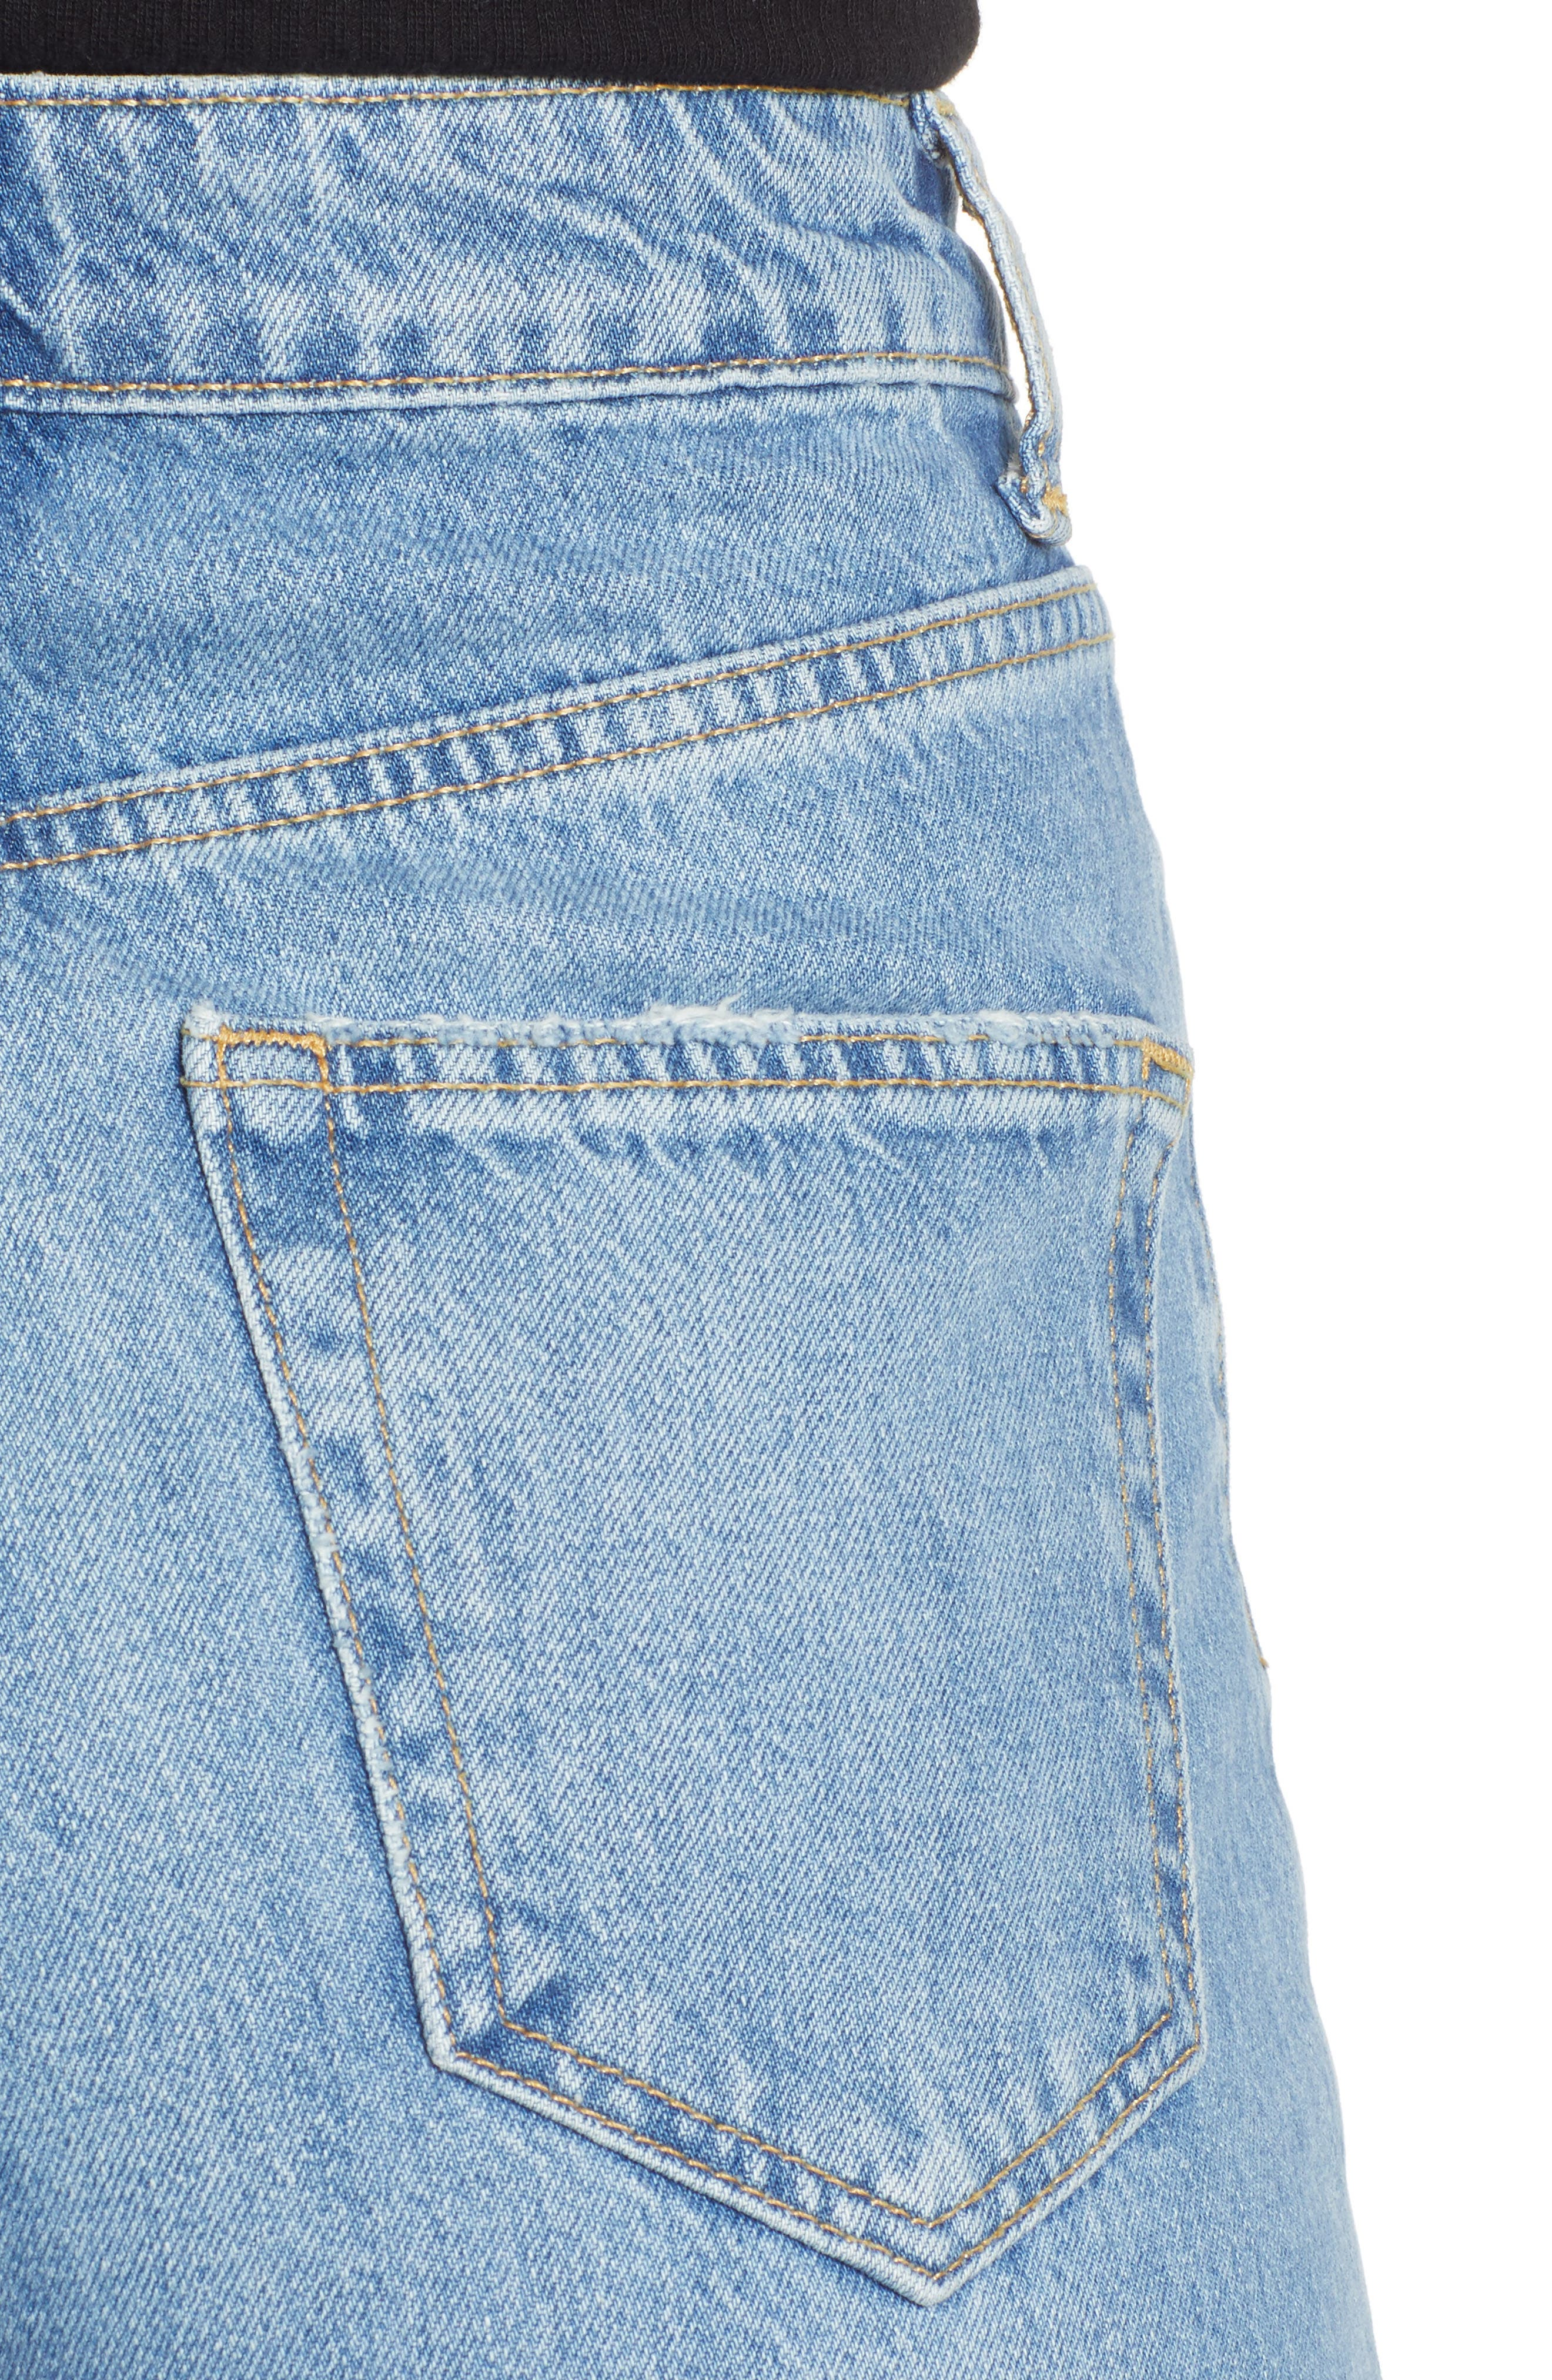 Crop Wide Leg Jeans,                             Alternate thumbnail 4, color,                             MID DENIM